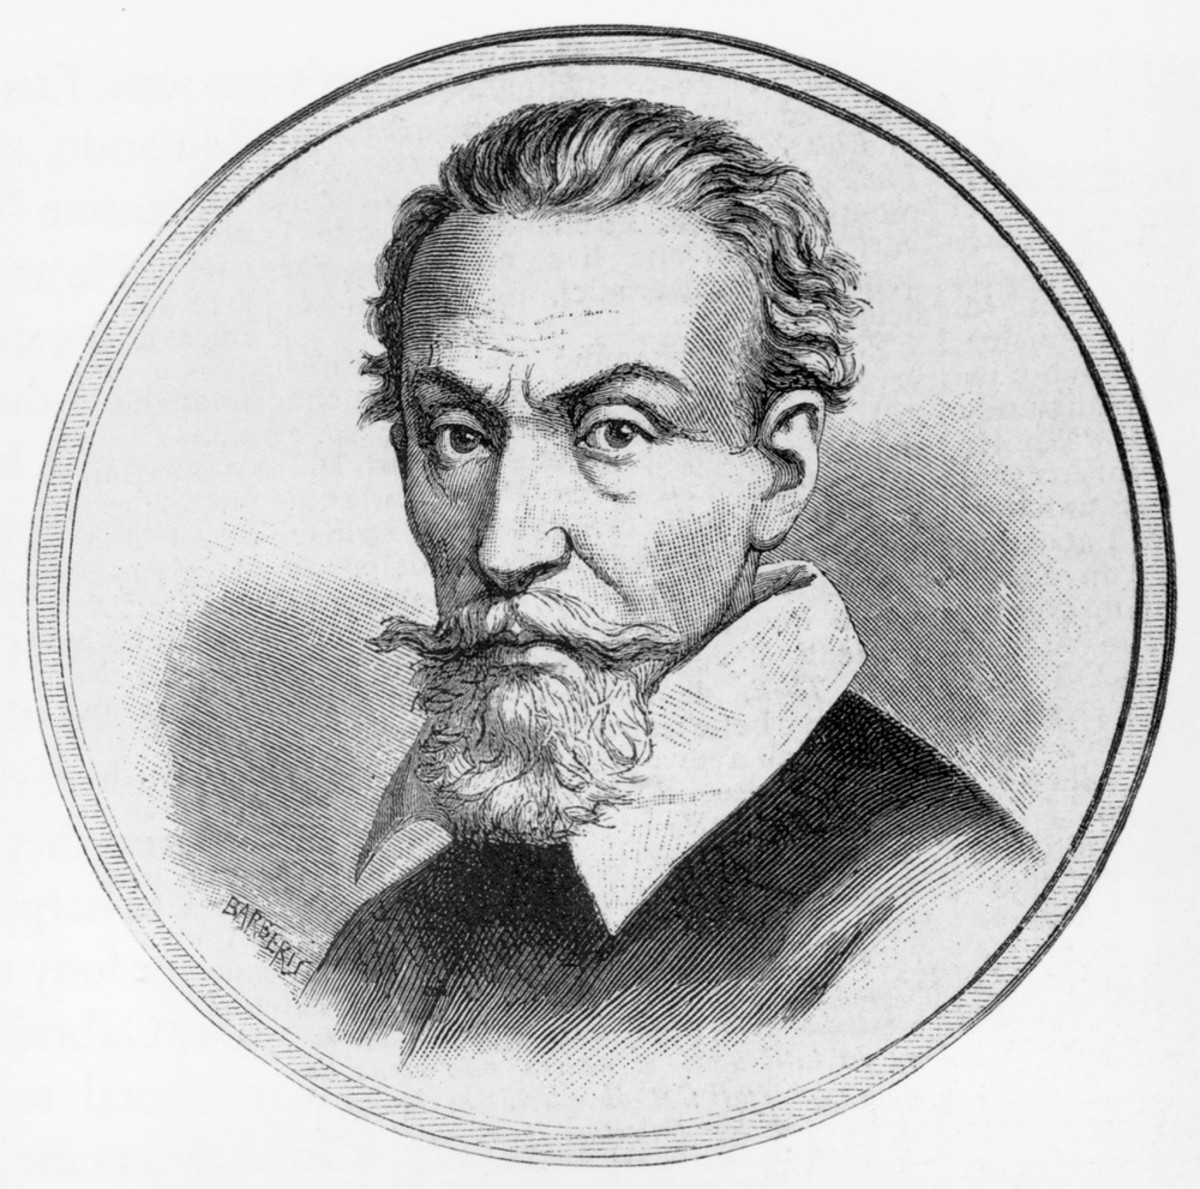 Claudio Monteverdi (ecthing by Barberis)